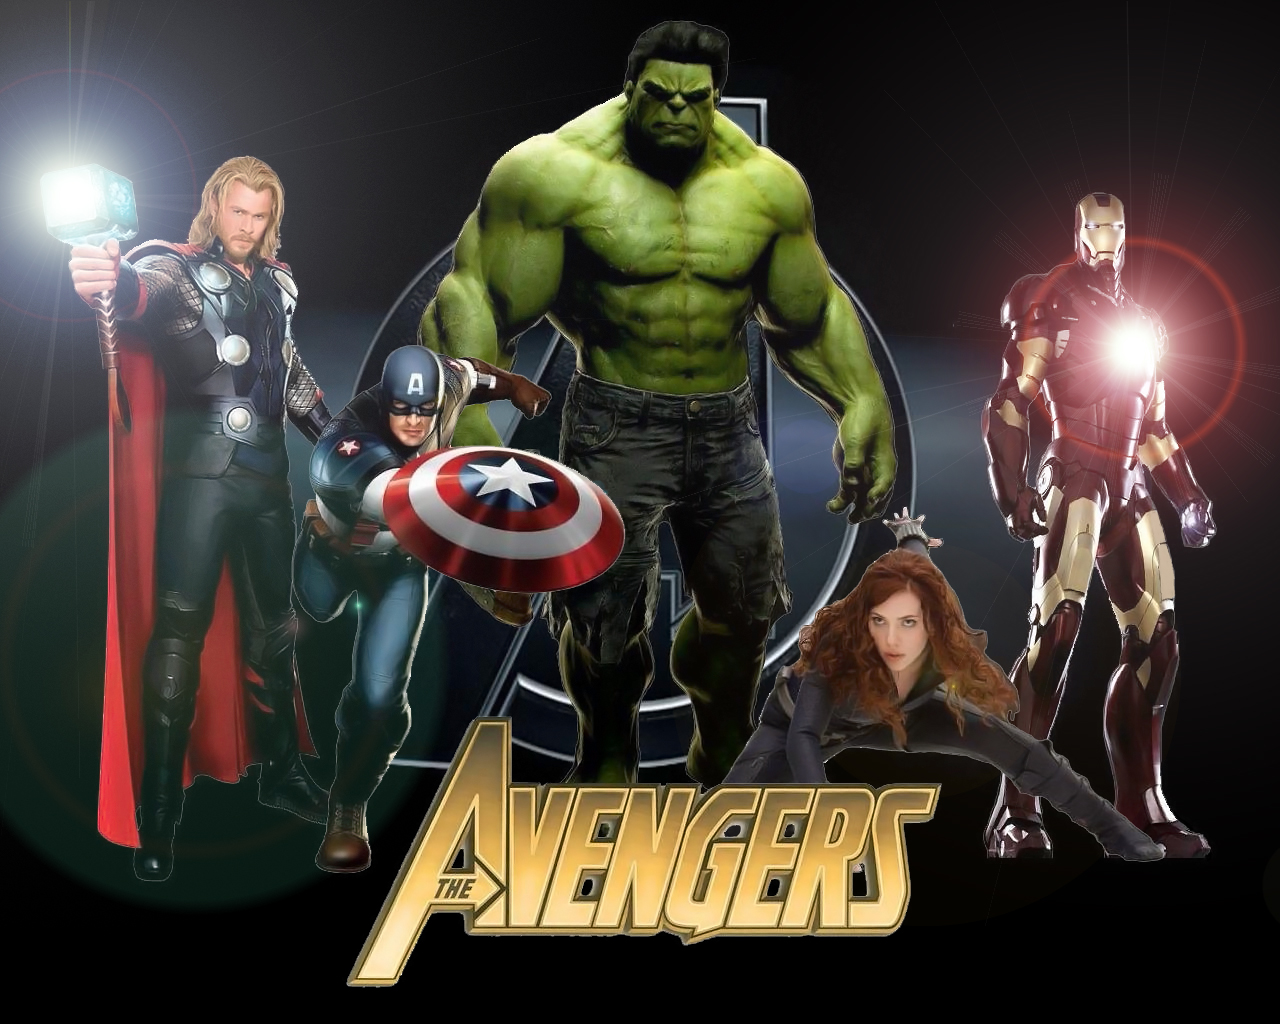 The Avengers movies in USA